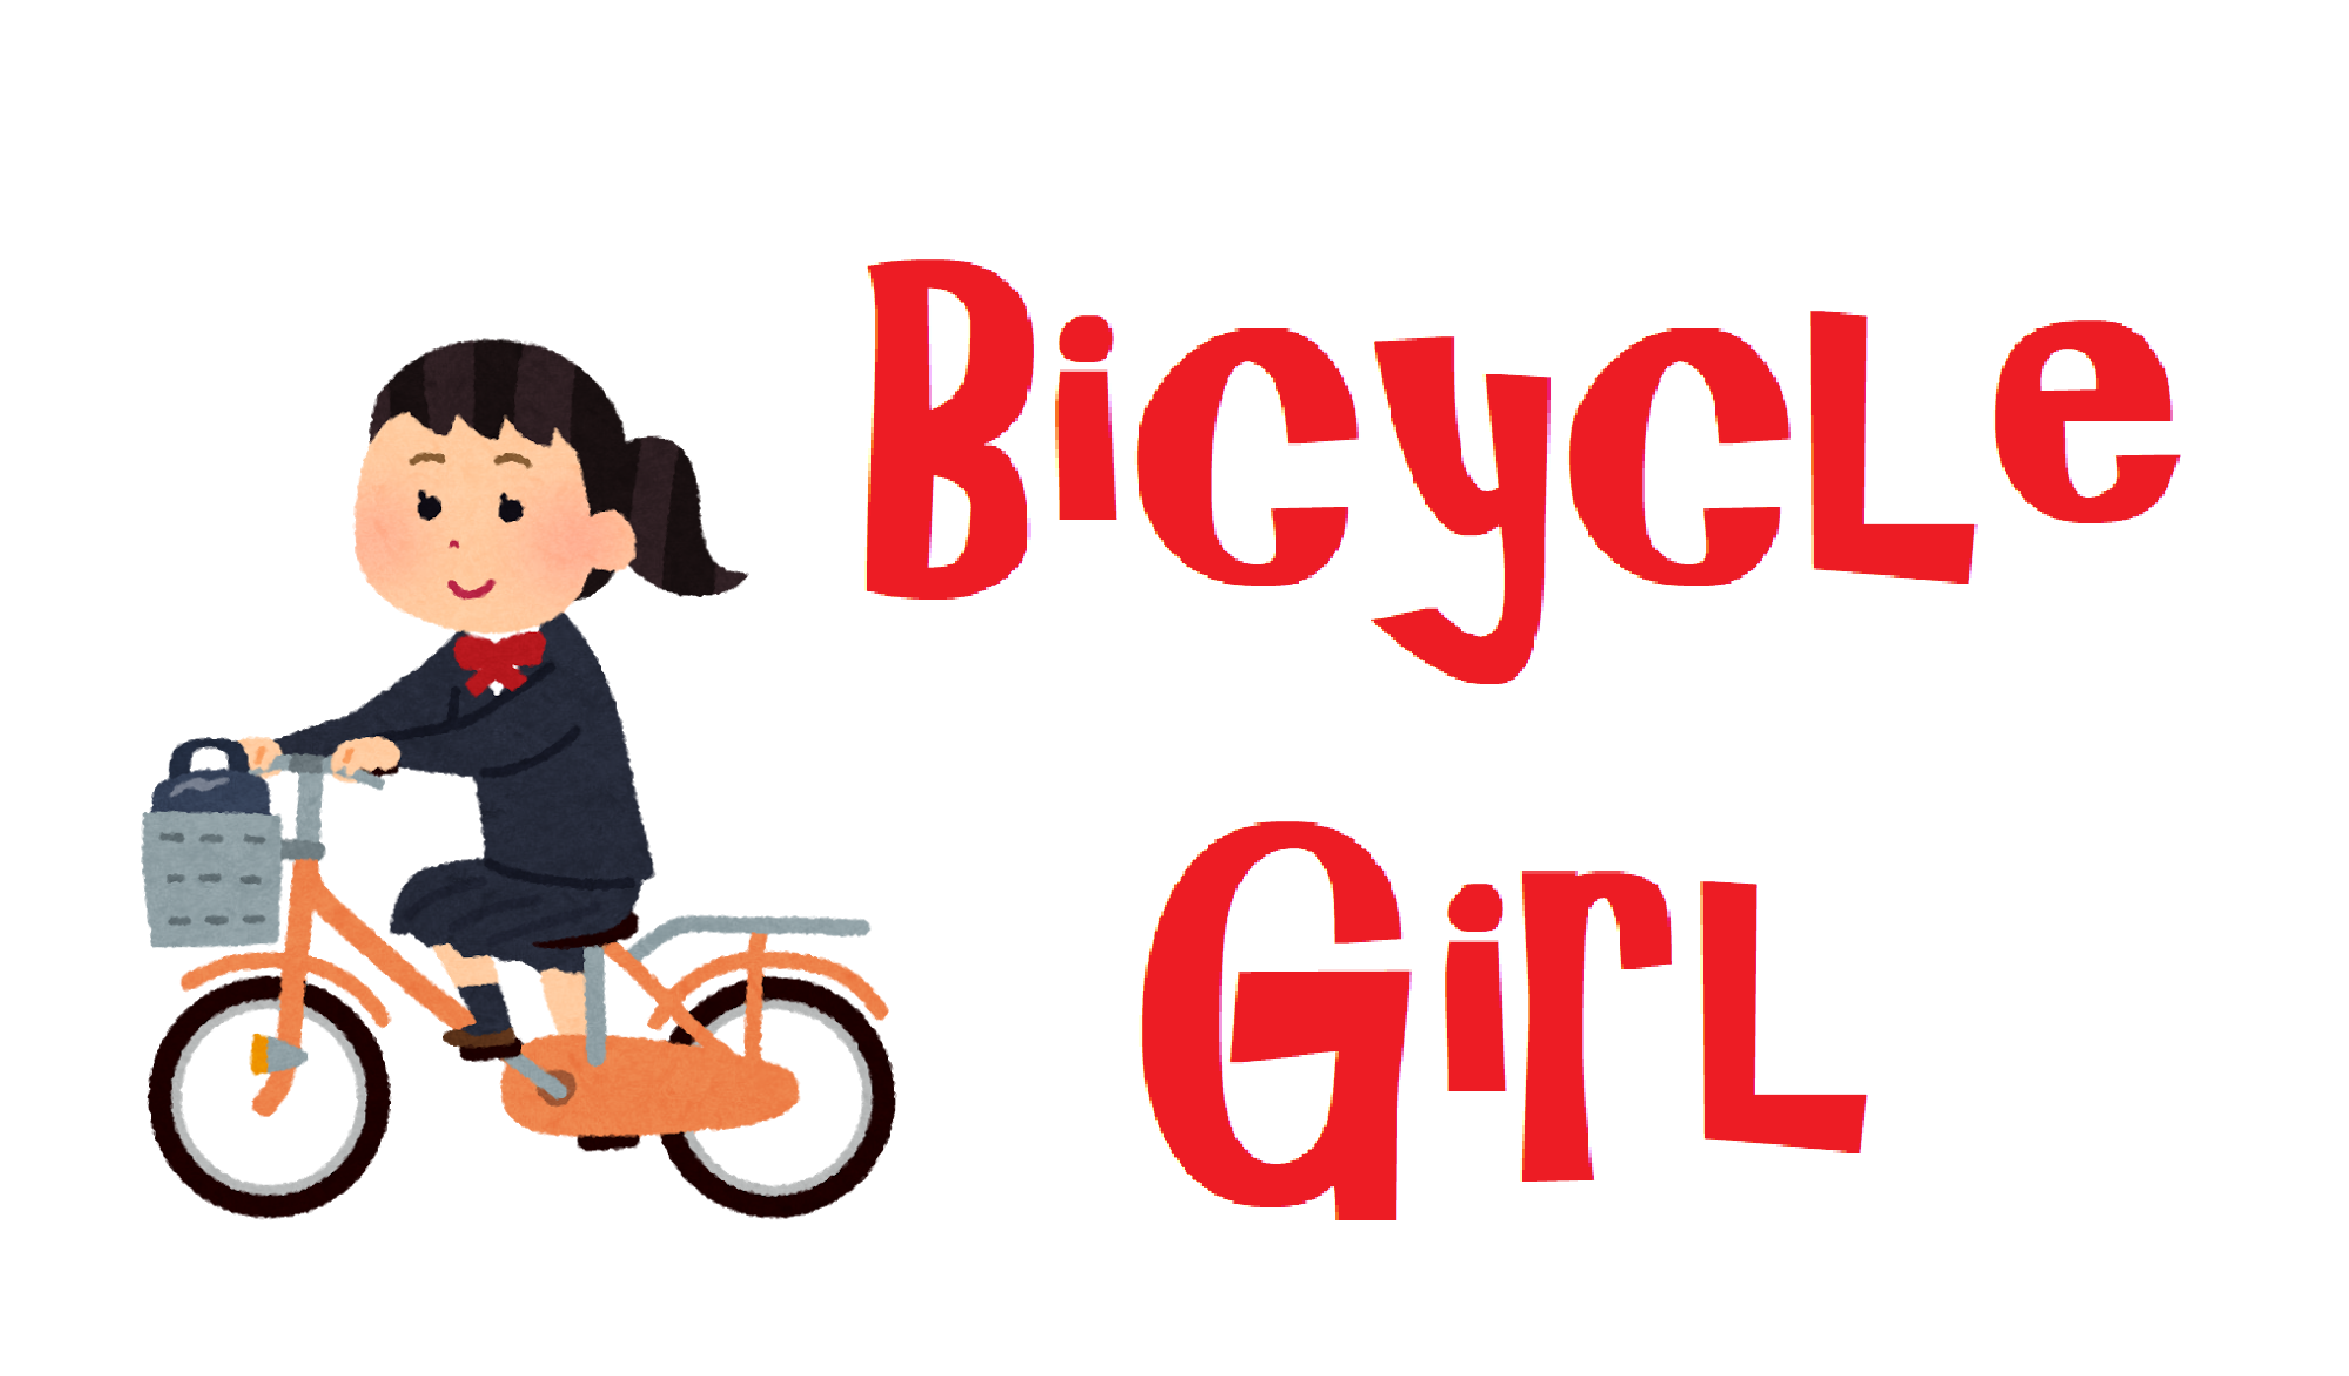 「Bicycle Girl」のイメージ